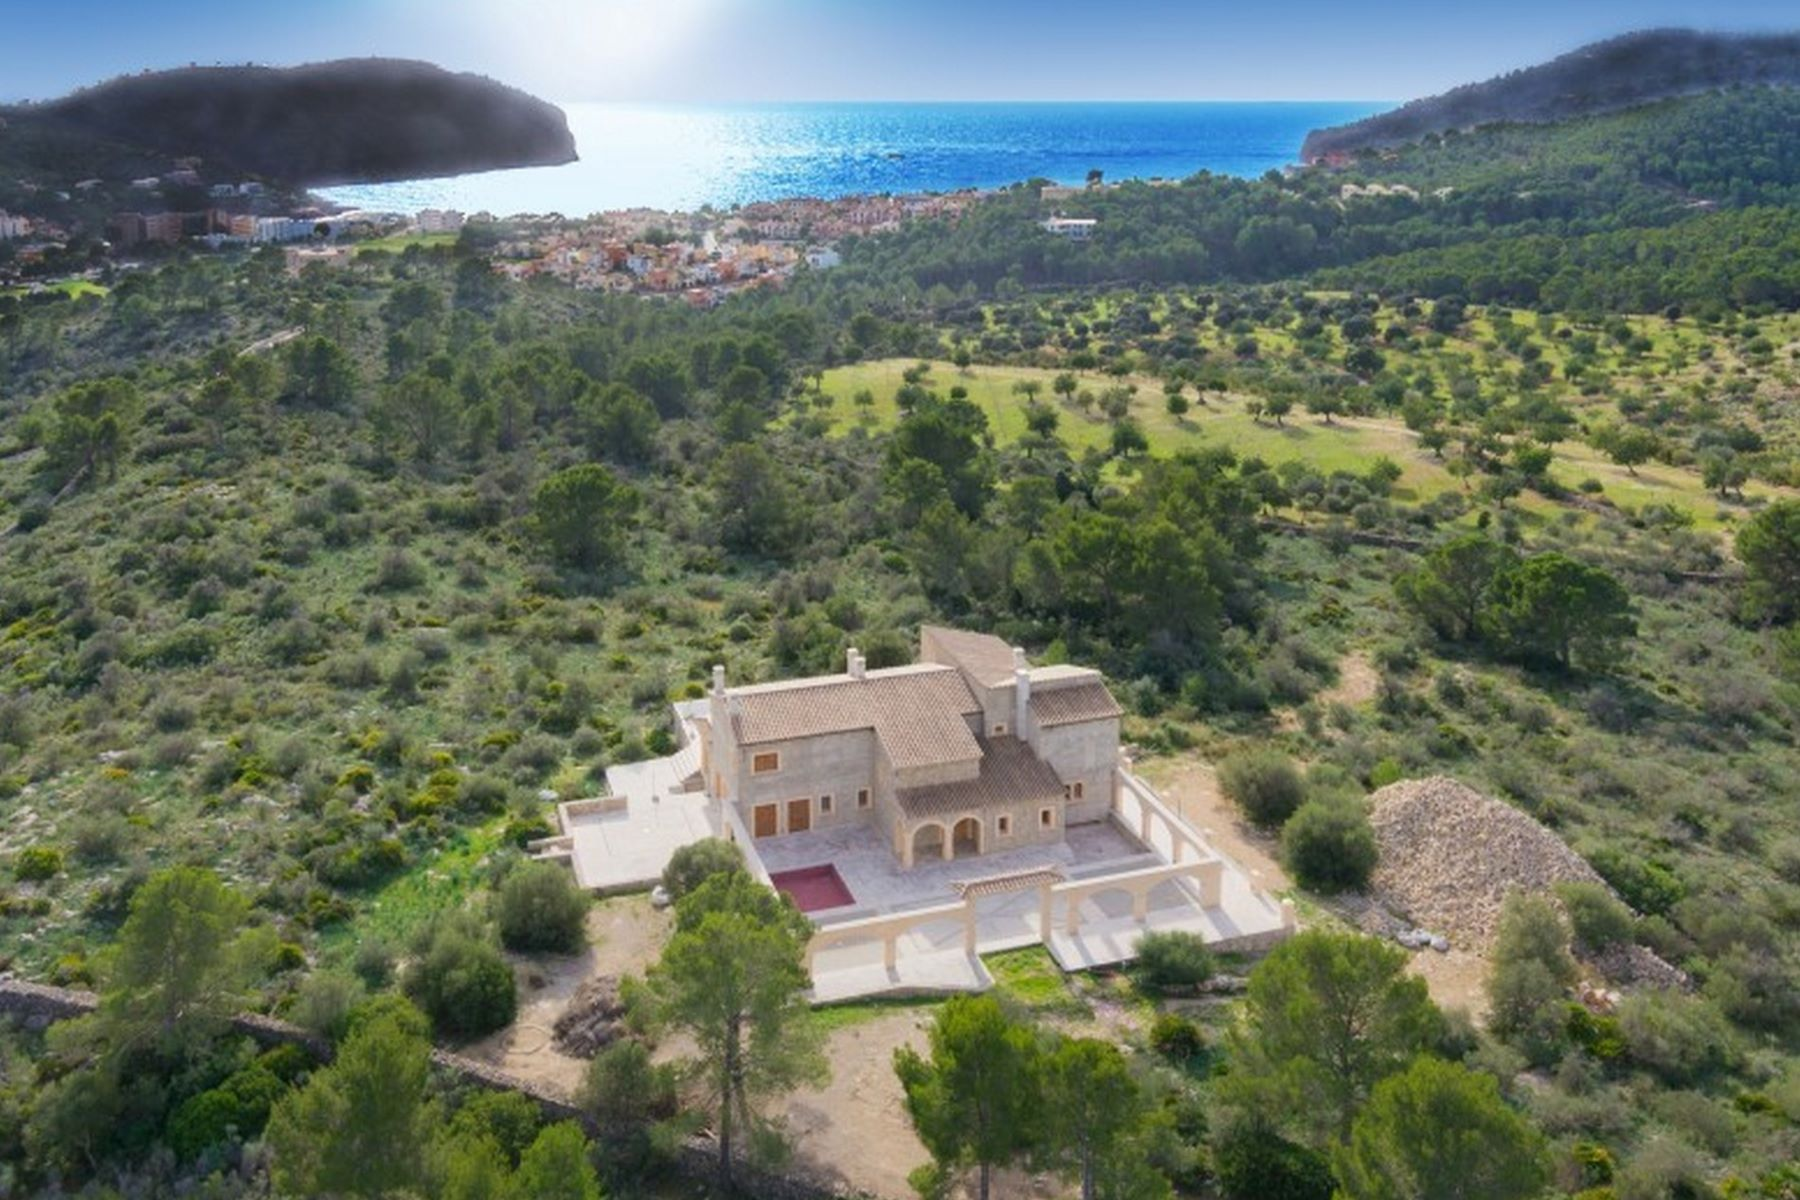 Single Family Home for Sale at Majestic Finca in Camp de Mar with sea views Other Balearic Islands, Balearic Islands, 07160 Spain